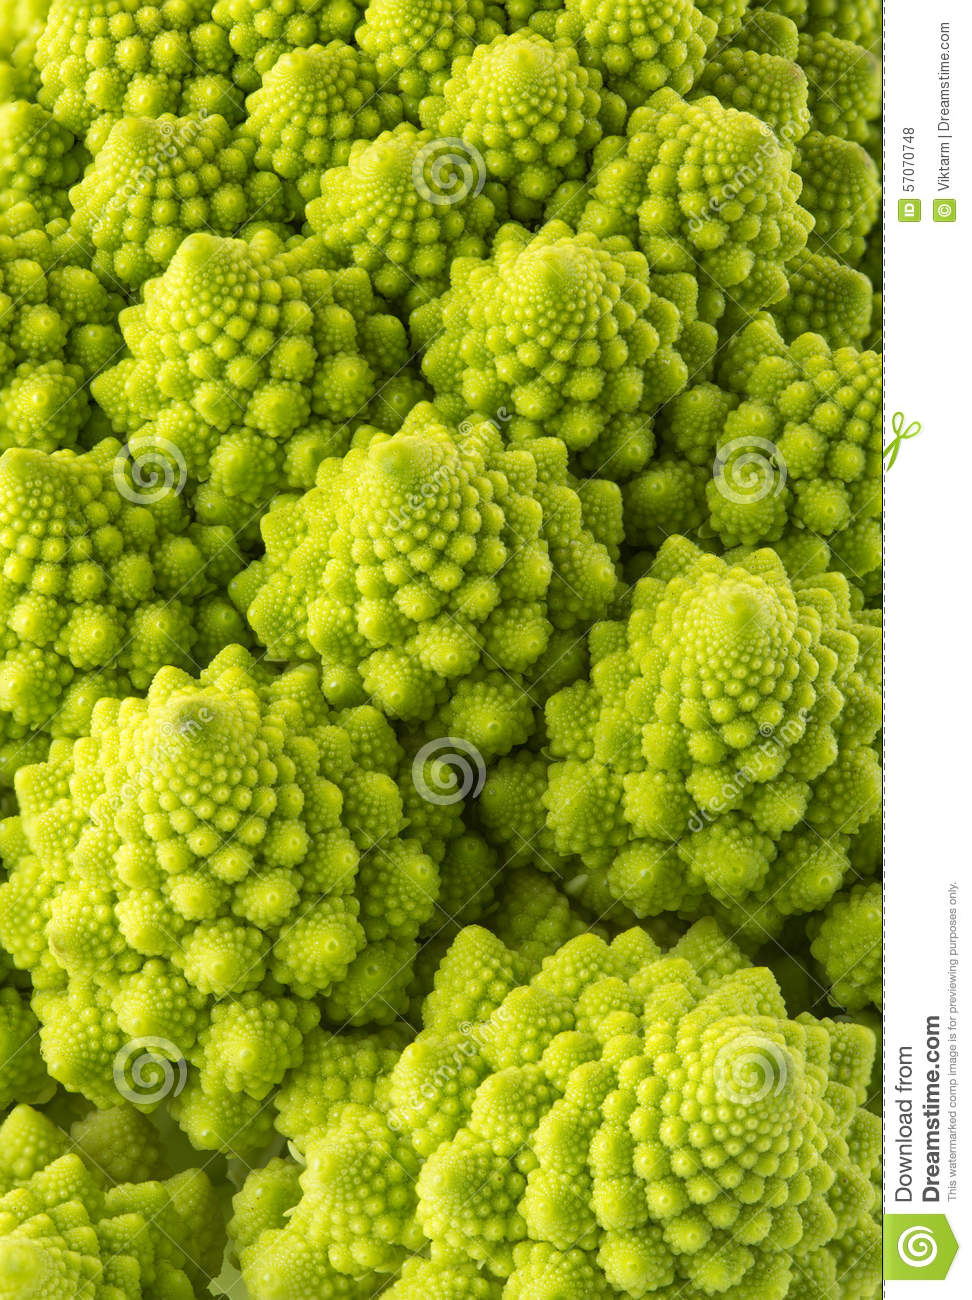 De broccoli van Romanesco